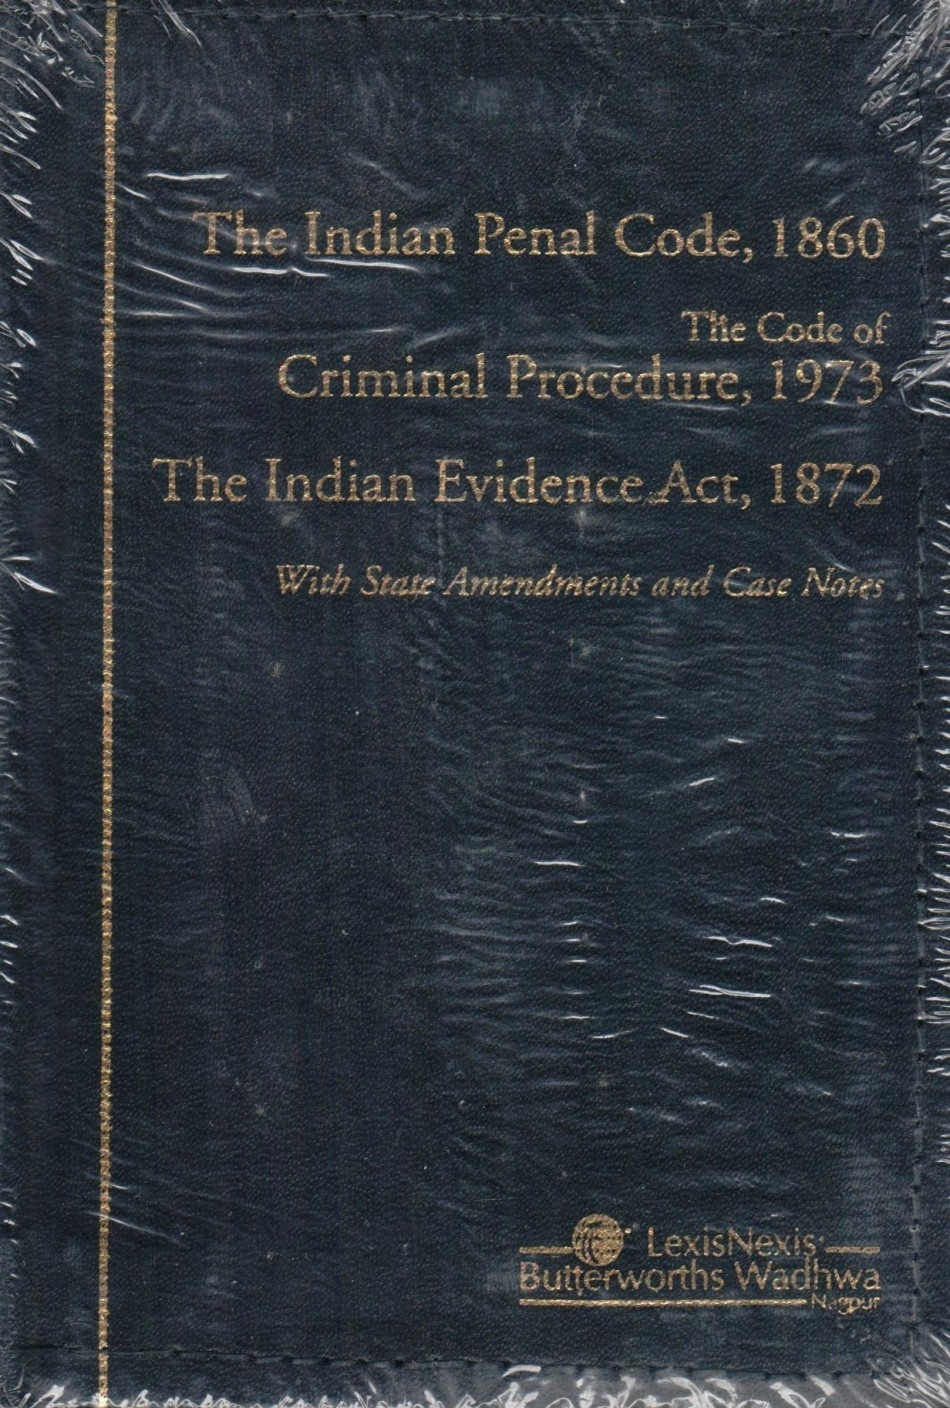 the indian penal code of 1860 582 rows full text containing the act, indian penal code, 1860, with all the sections.